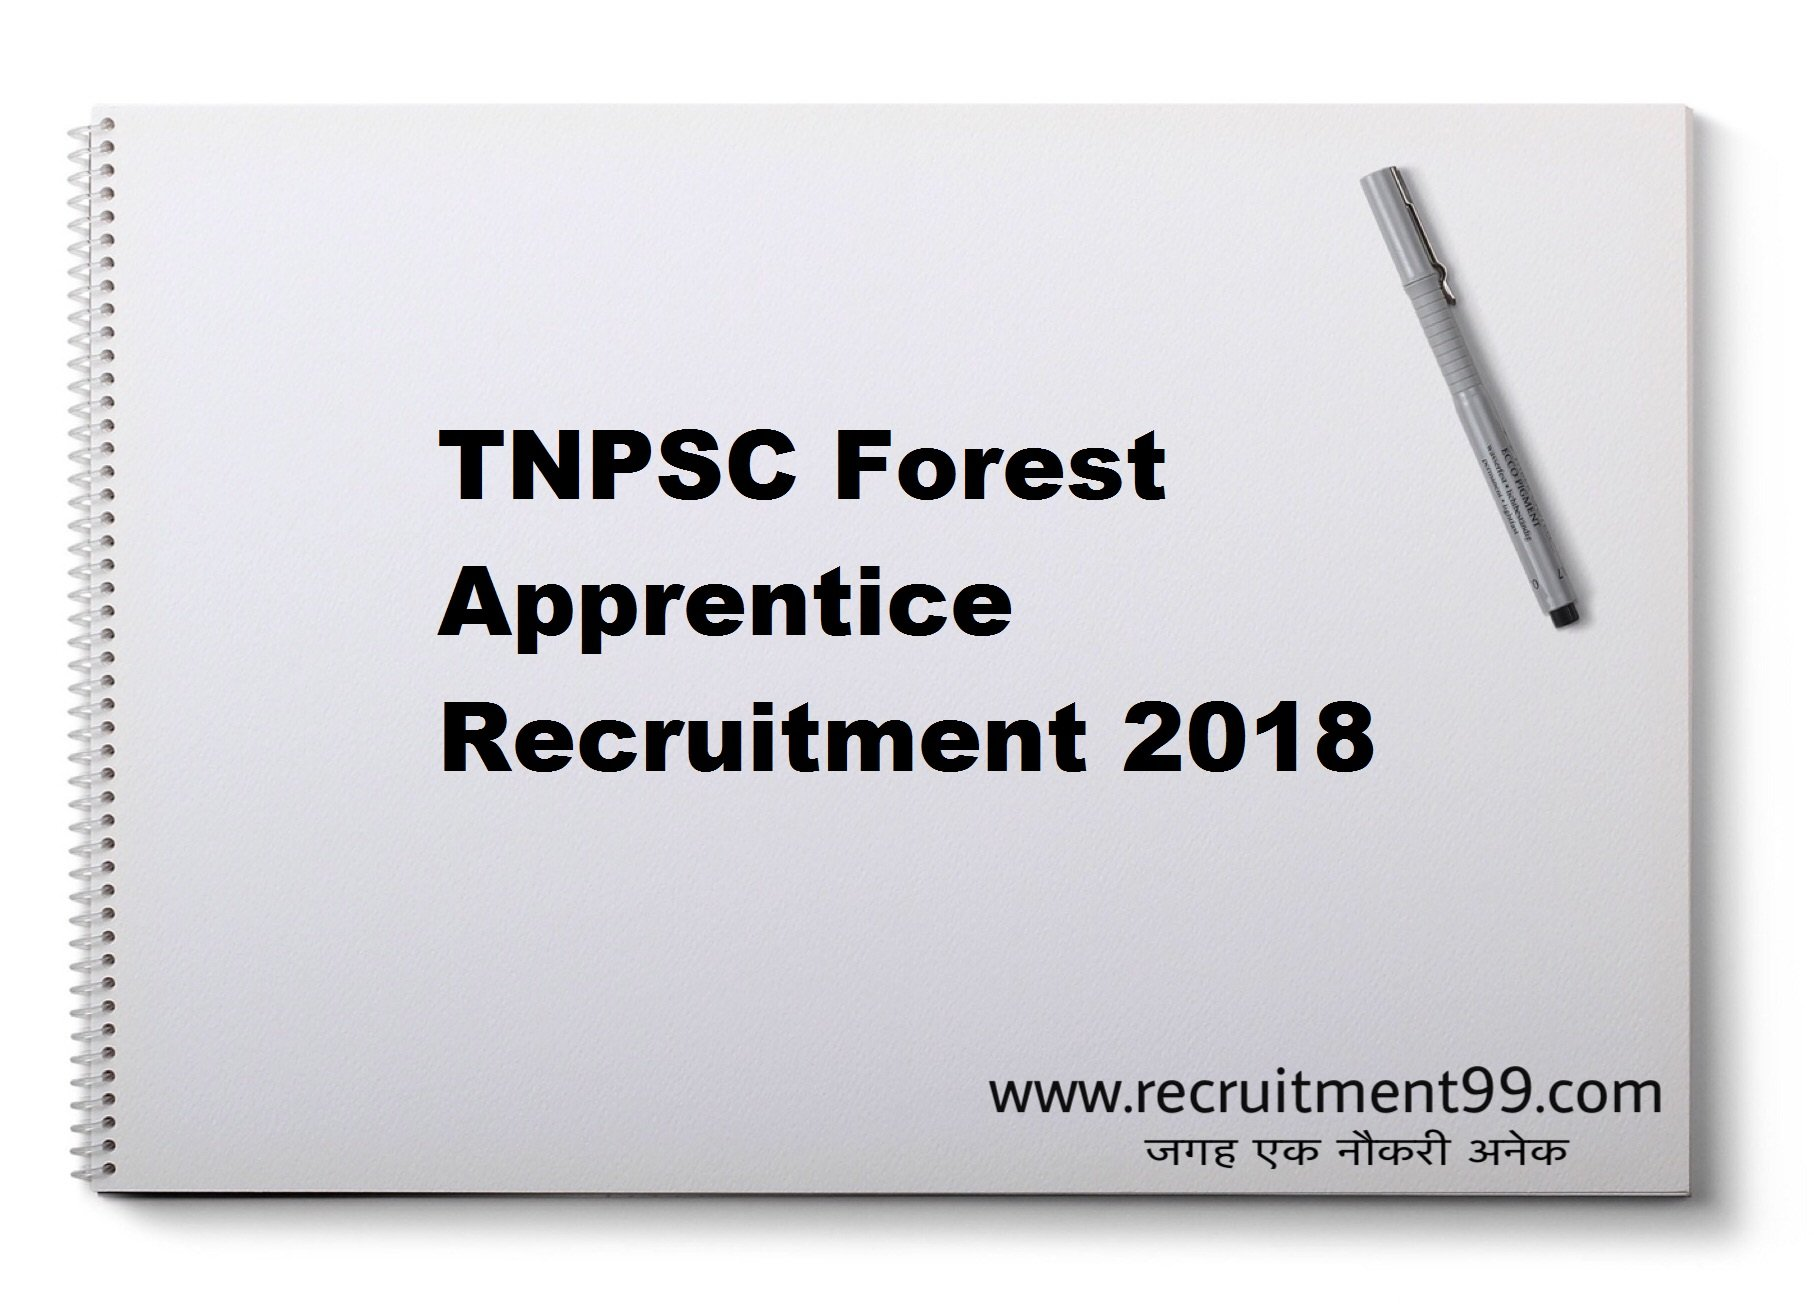 TNPSC Forest Apprentice Recruitment Hall Ticket Result 2018